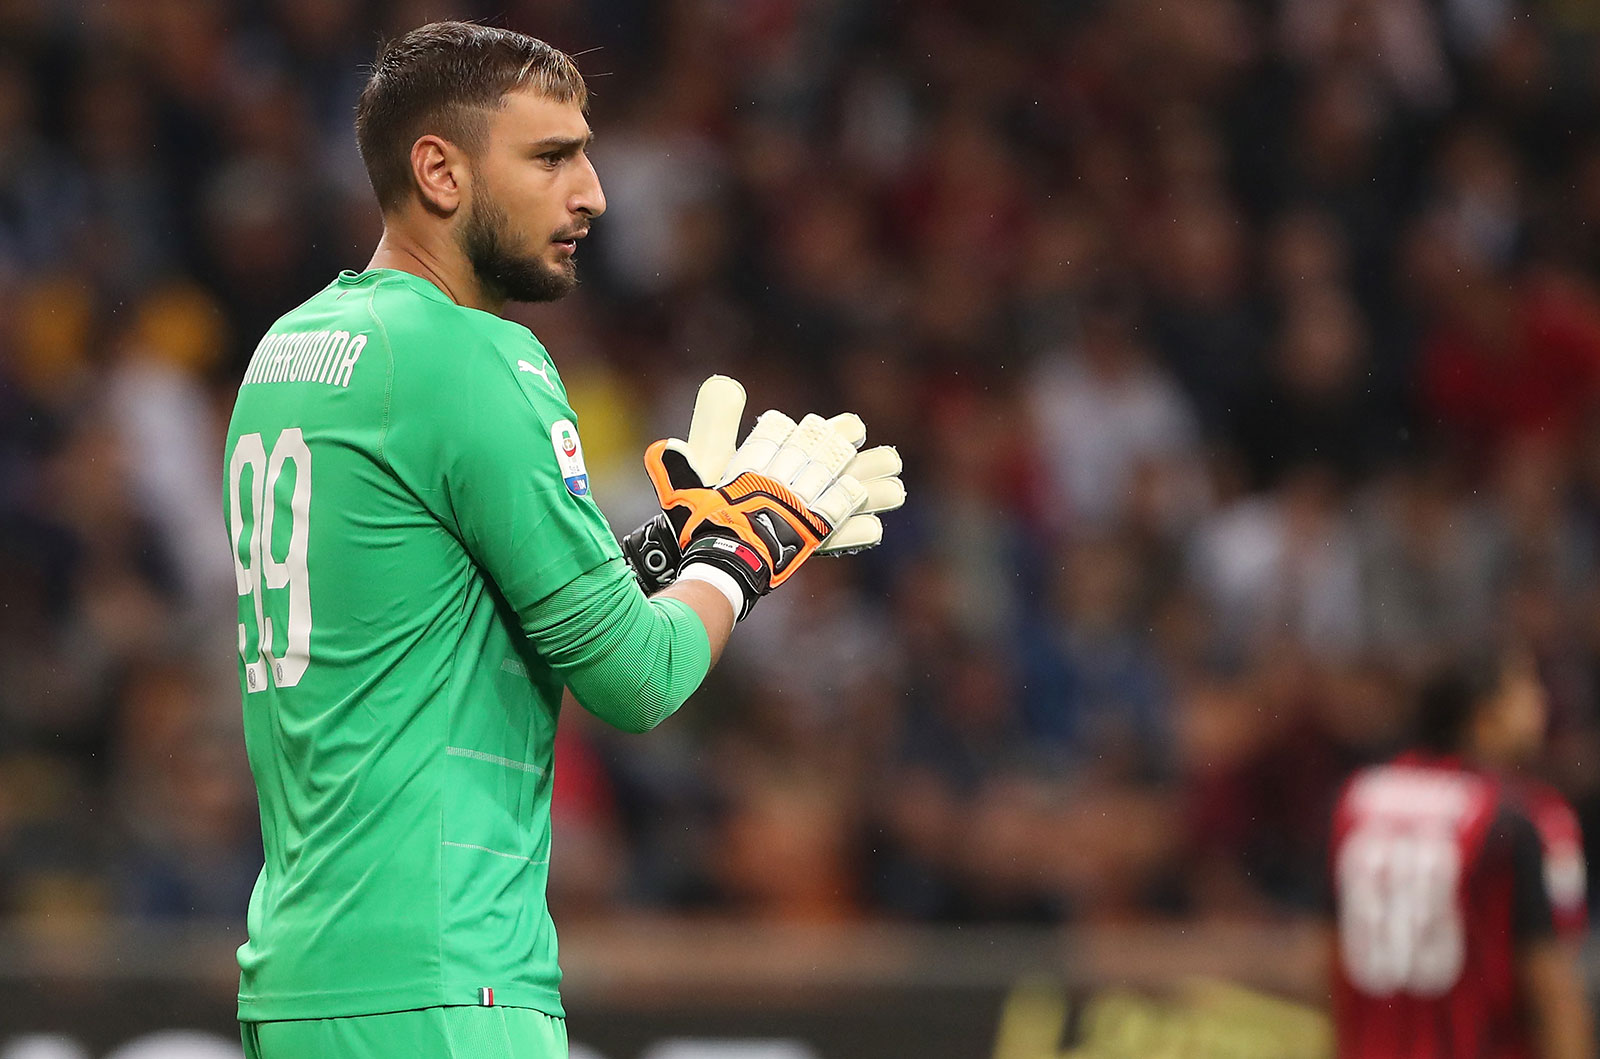 Gianluigi Donnarumma at the end of Milan-Roma at Stadio San Siro on August 31, 2018. (Photo by Marco Luzzani/Getty Images)